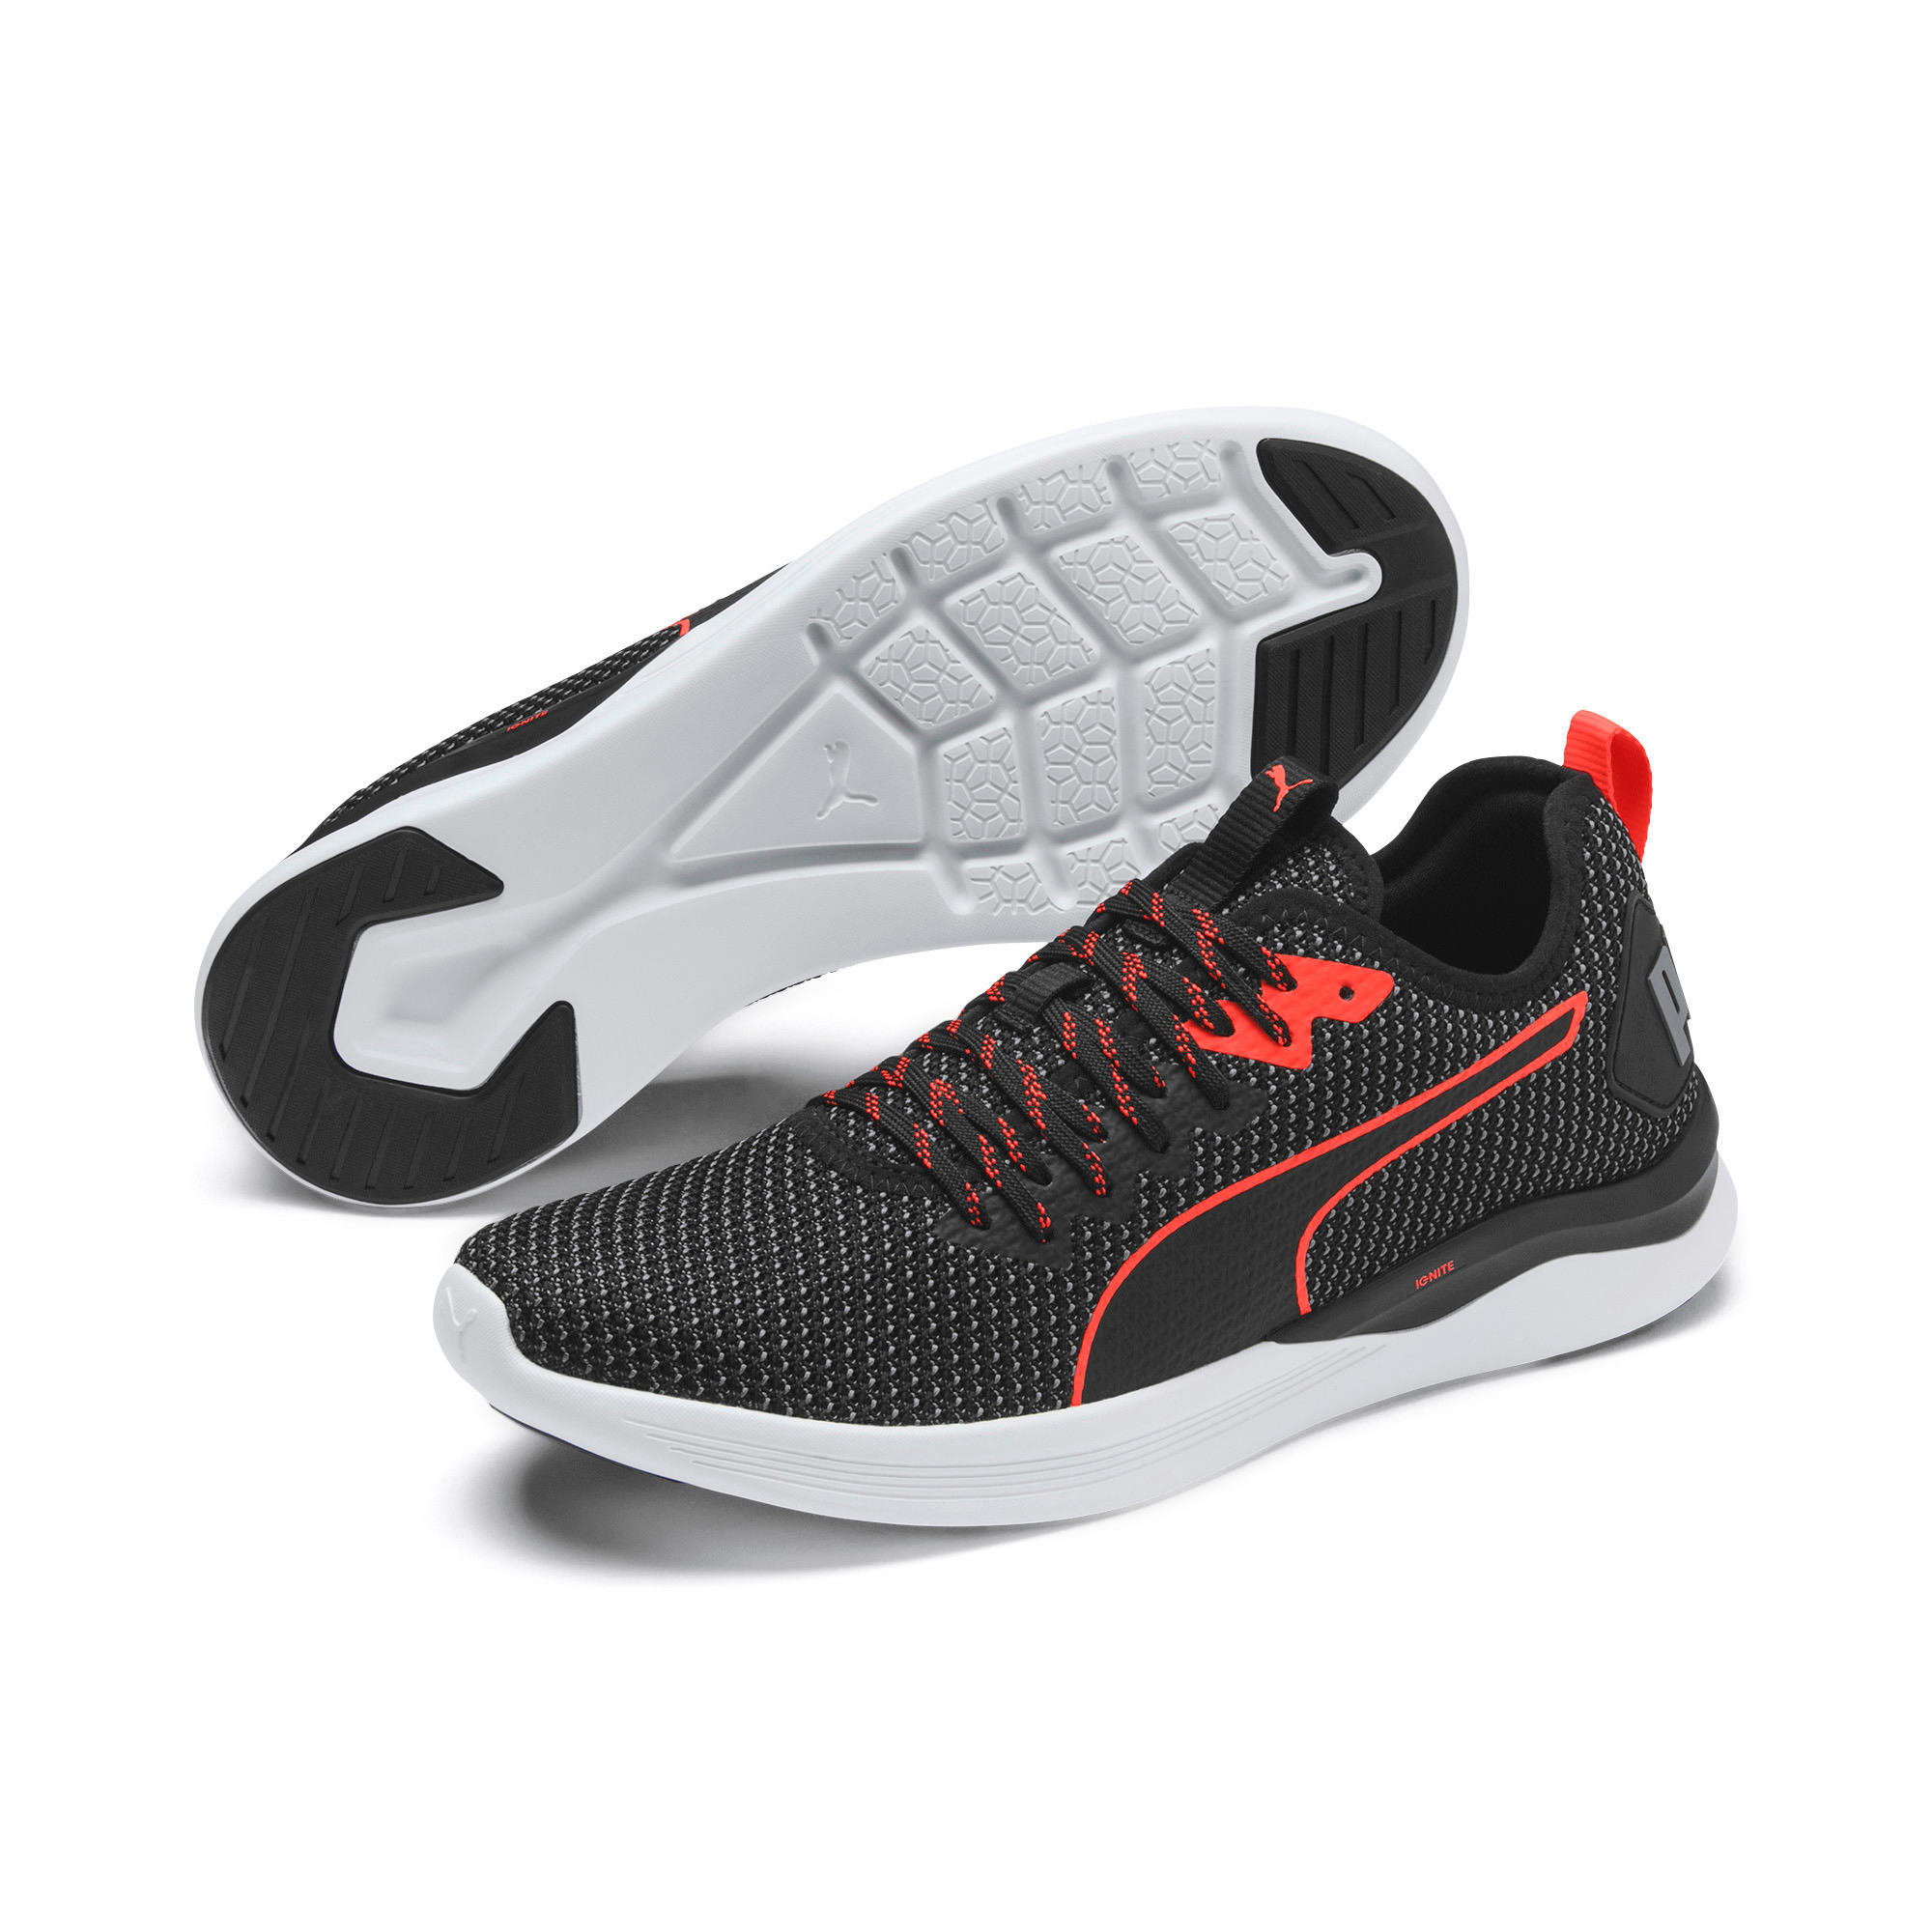 Thumbnail 3 of Scarpe Running IGNITE Flash FS uomo, Puma Black-Nrgy Red, medium